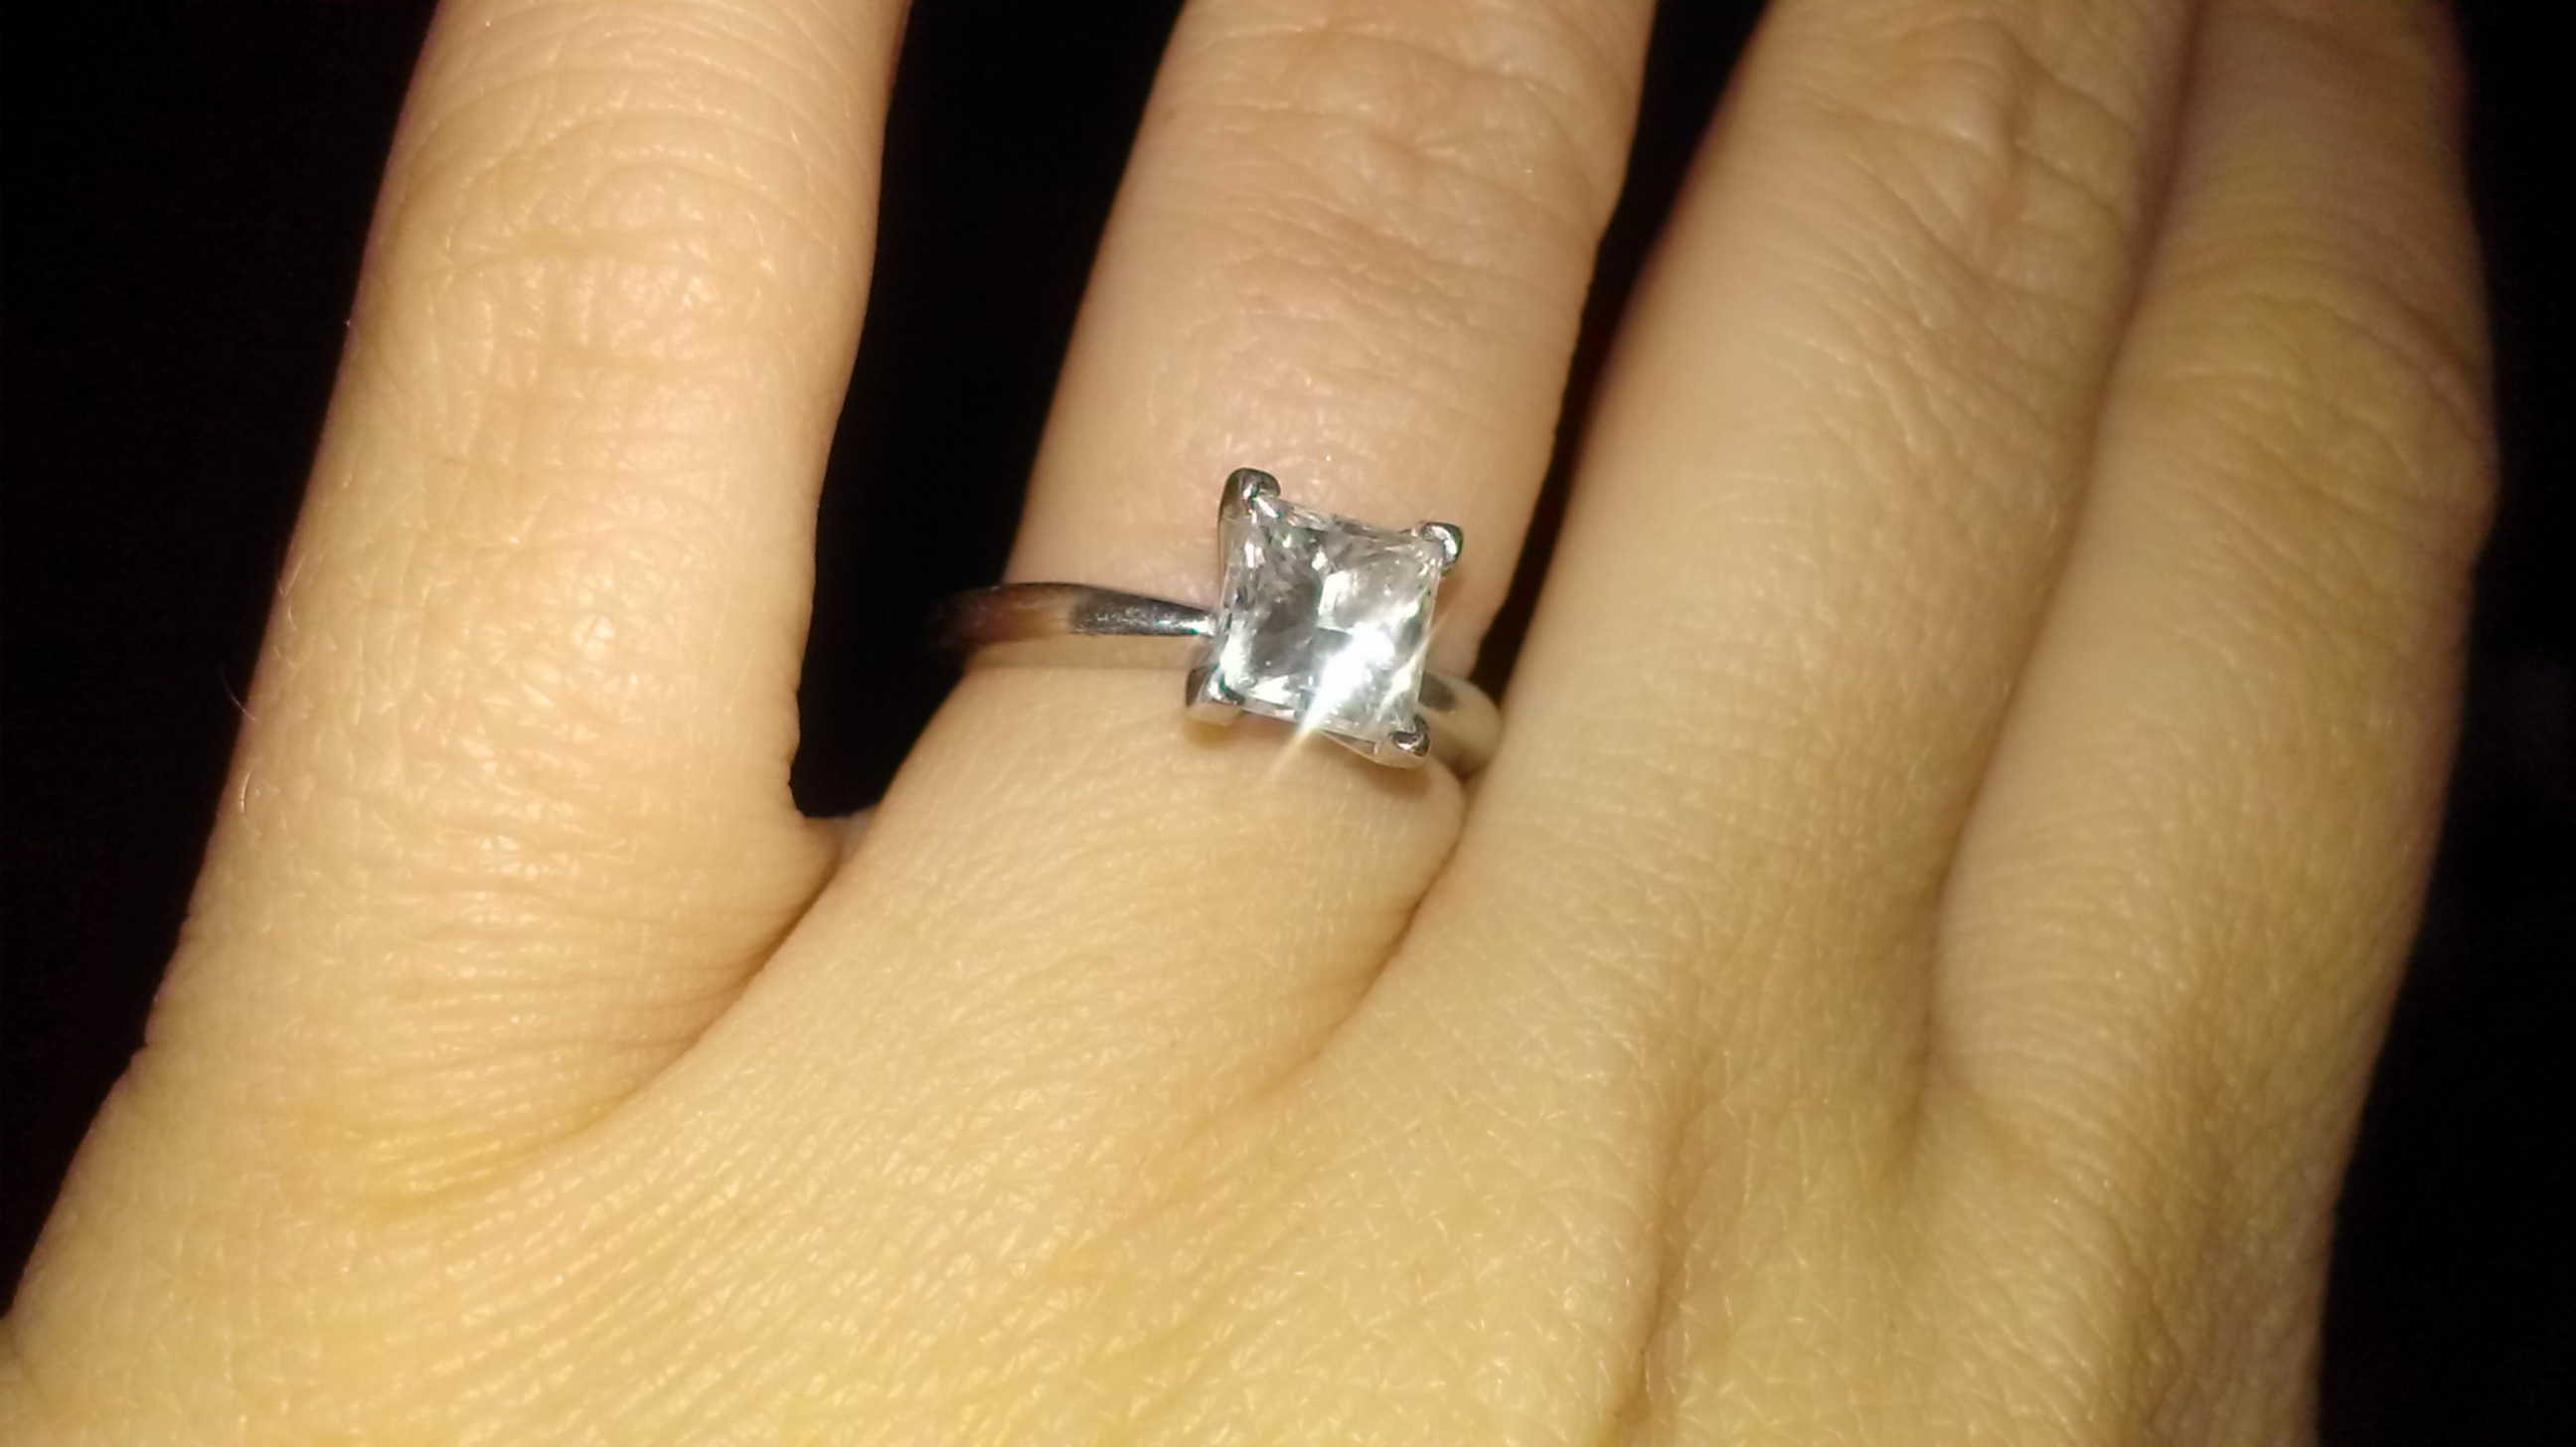 d7f5536bc82 1.5 CT Princess Cut Diamond Solitaire Engagement Ring set in a 4-prong  Platinum Band